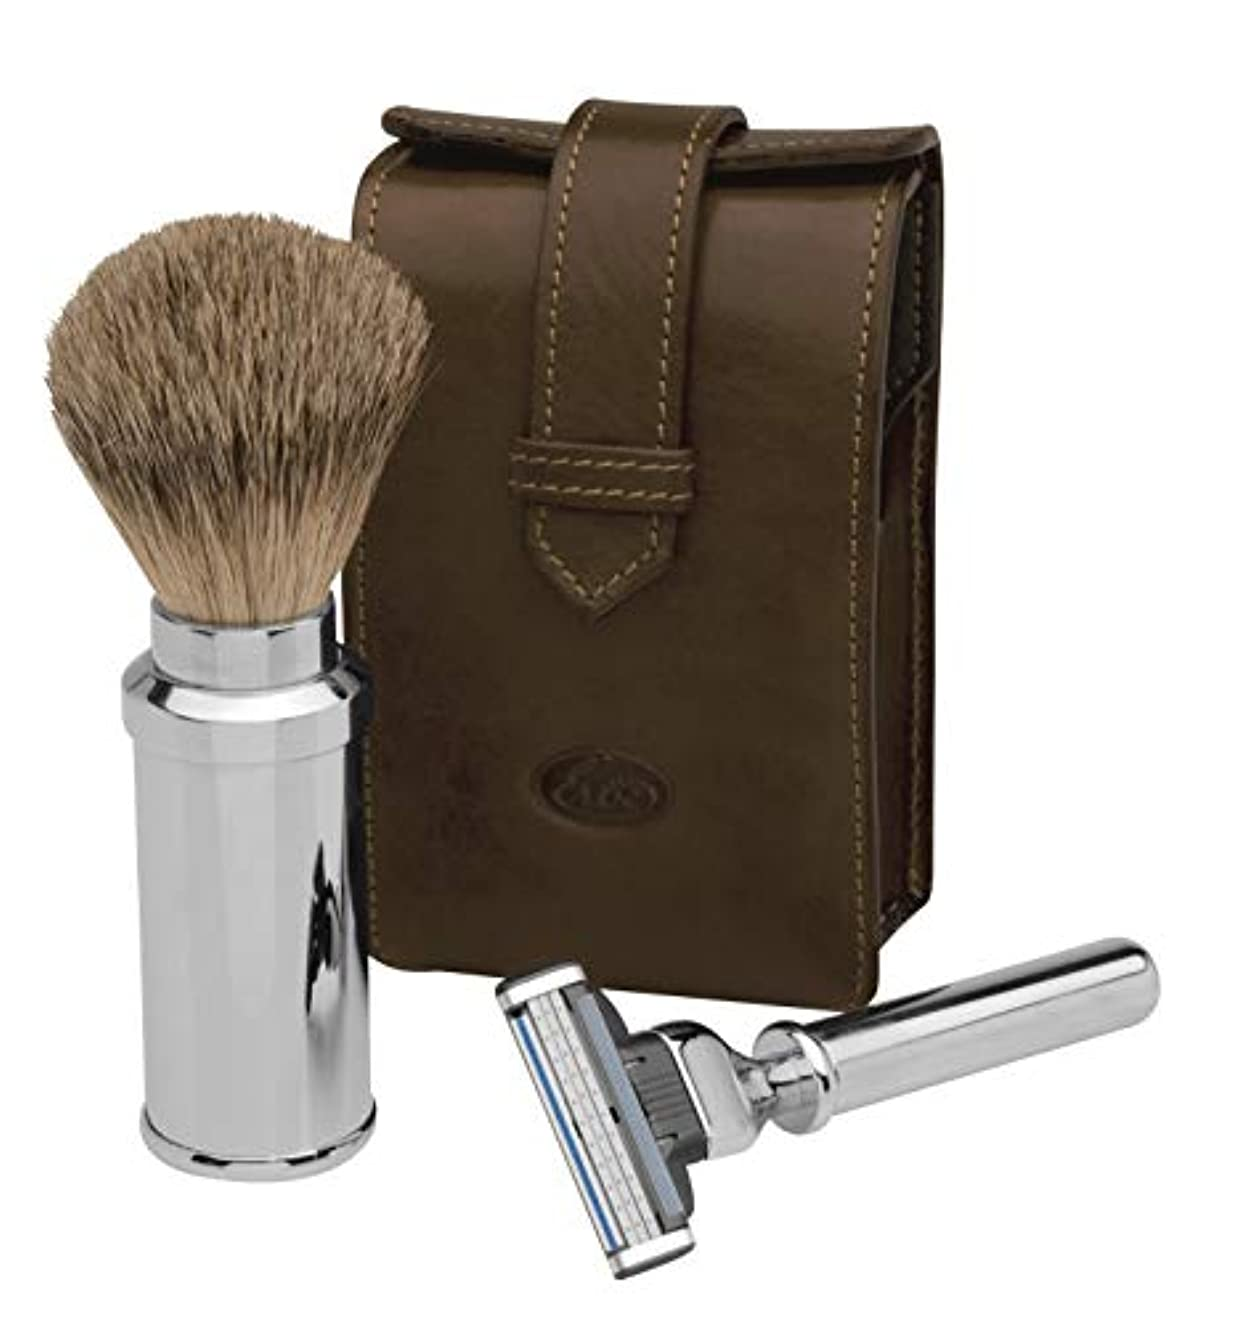 オンに頼るキャプションErbe Travel Shaving Set, Razor and Shaving Brush in brown Leather Pocket